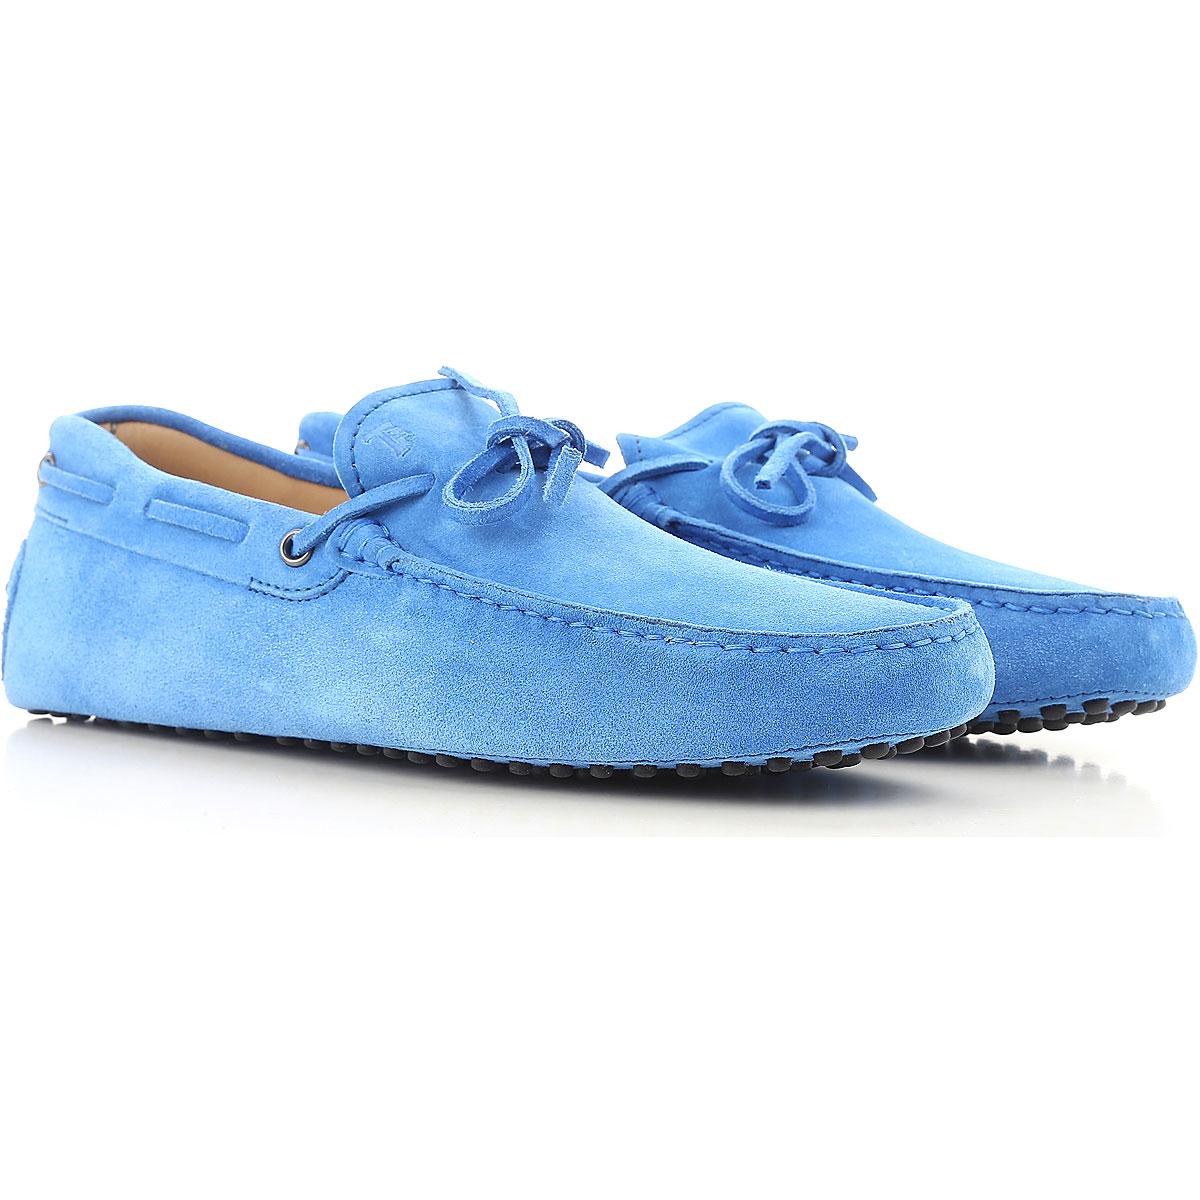 Tods Loafers for Men Light Blue Canada - GOOFASH - Mens LOAFERS